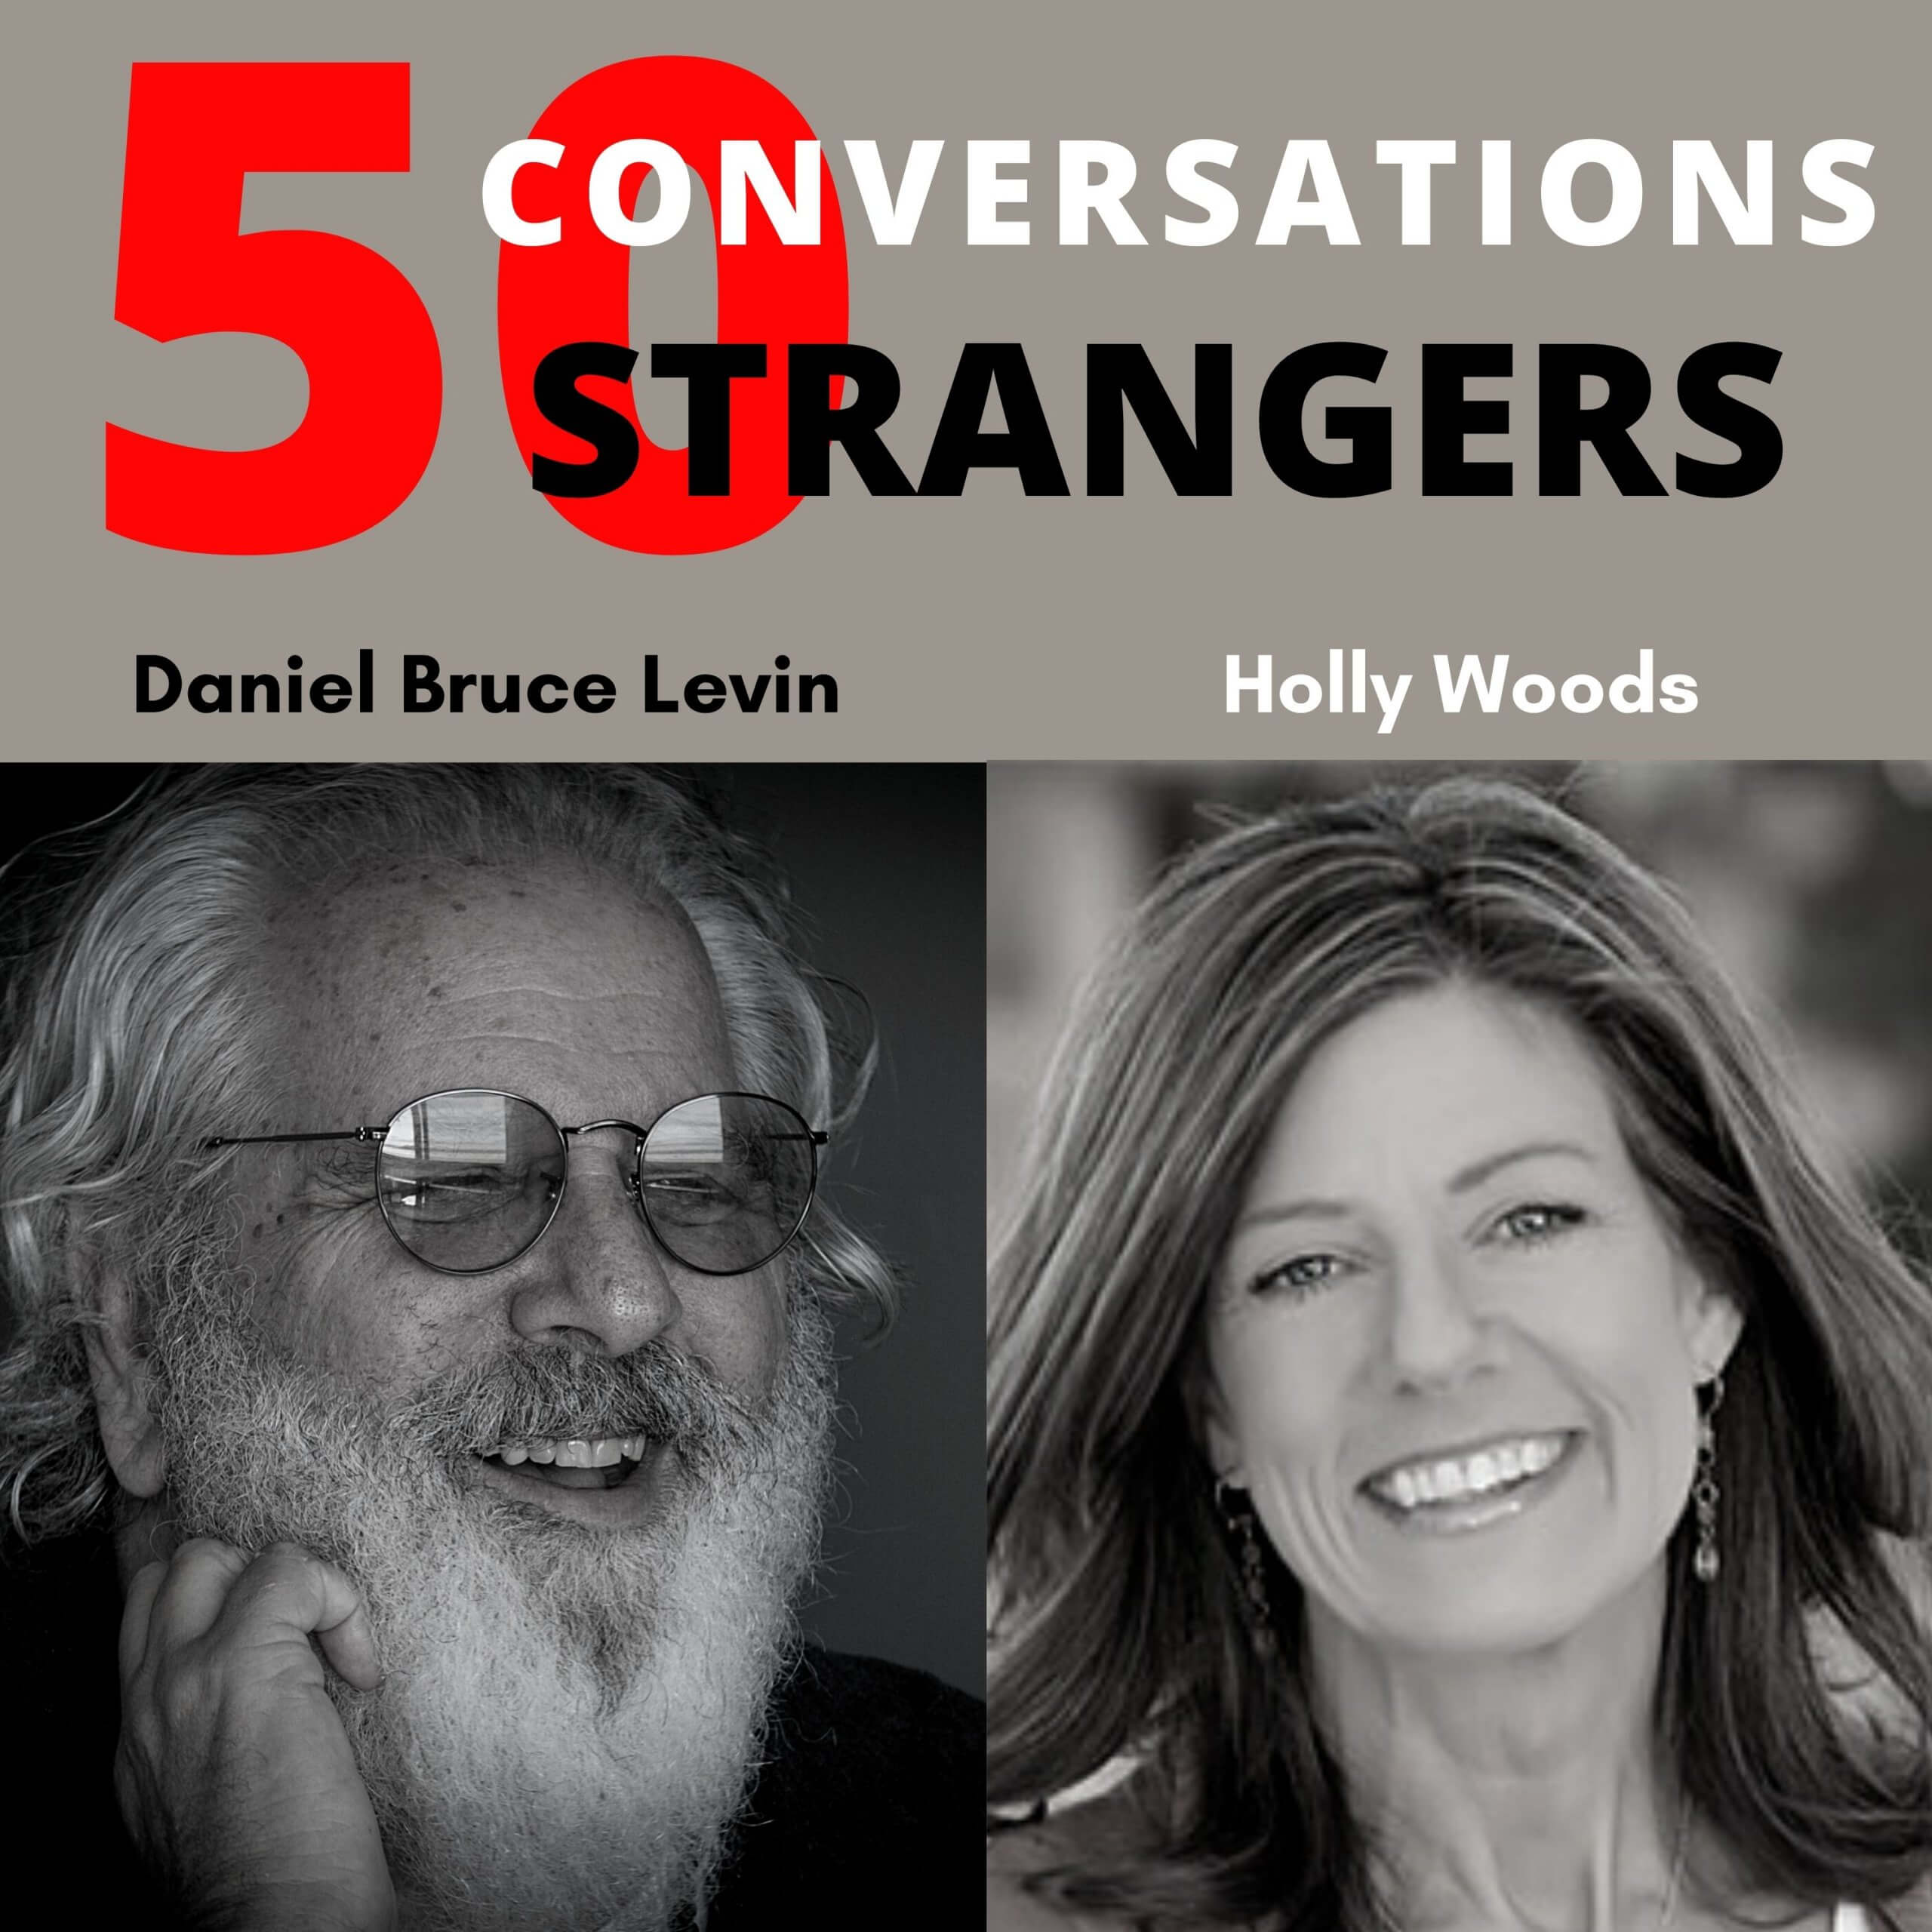 50 Conversations with 50 Strangers with Holly Woods